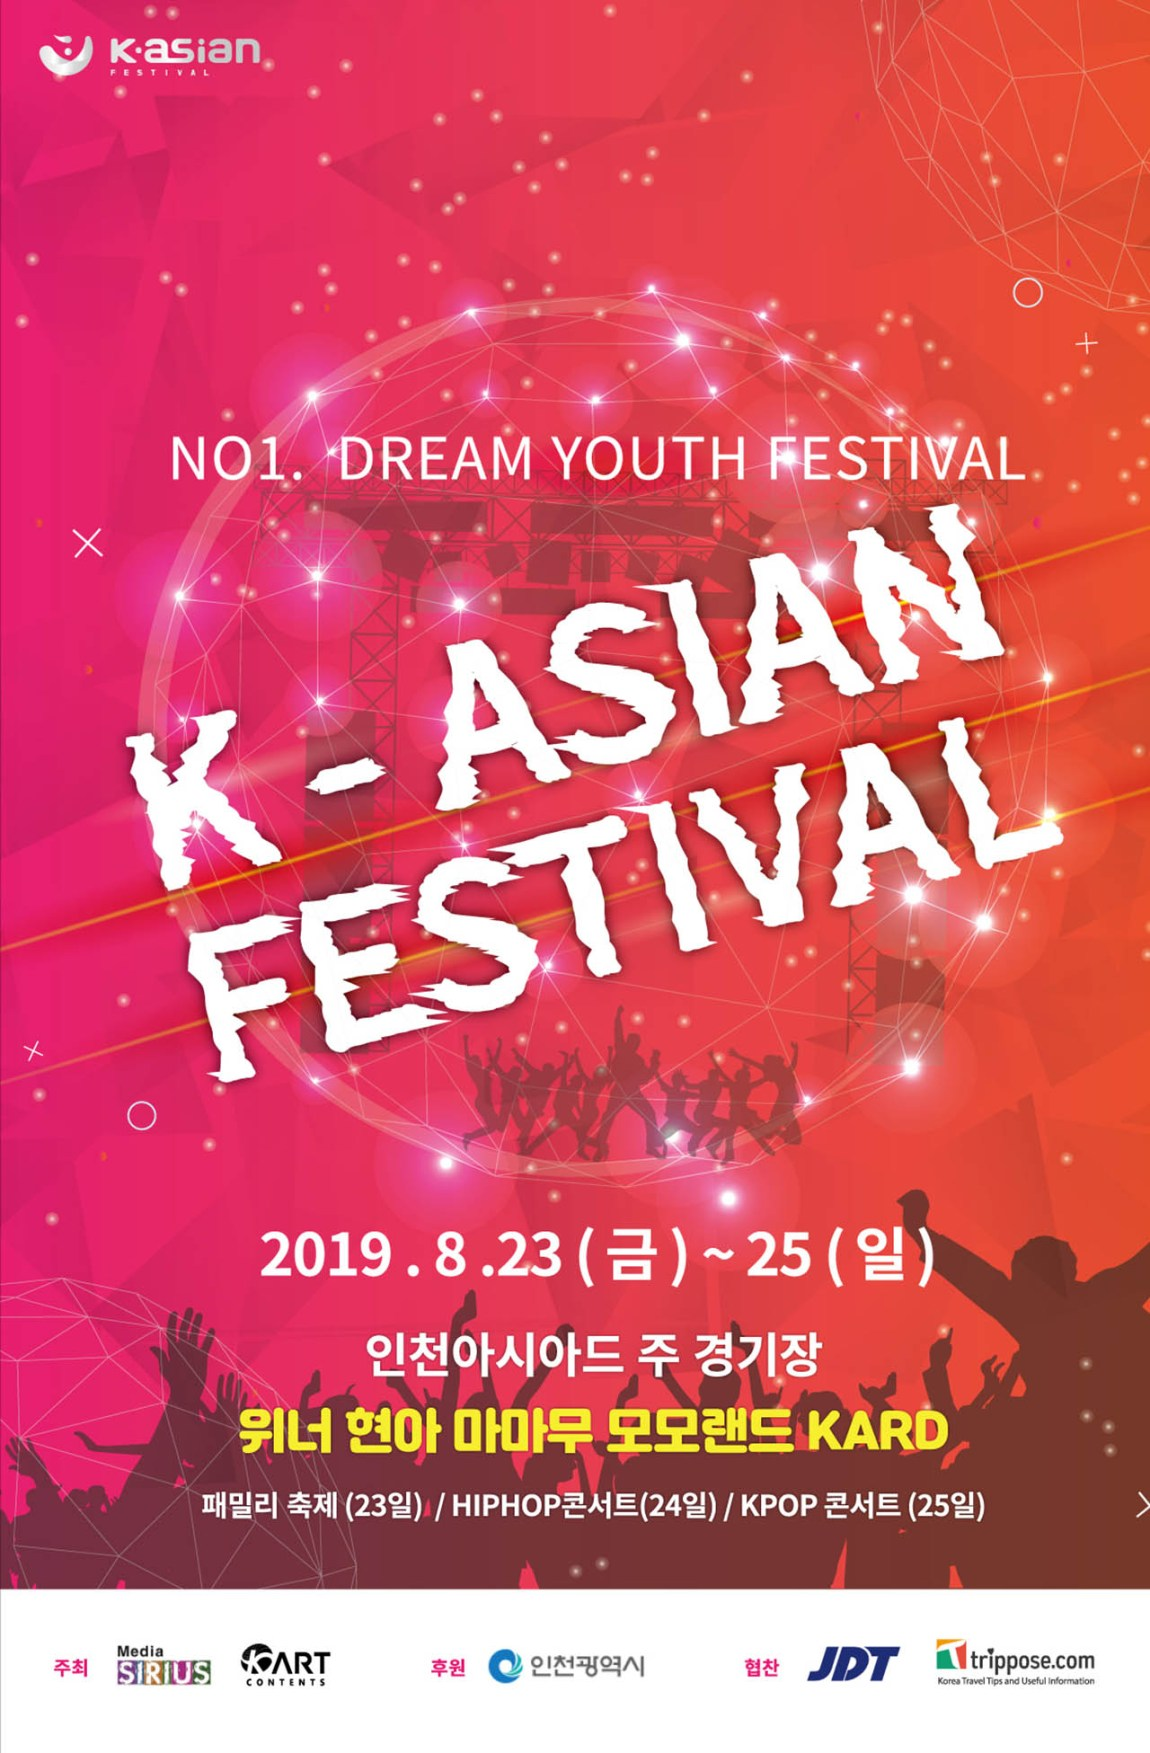 First lineup for 2019 K-ASIAN FESTIVAL is announced